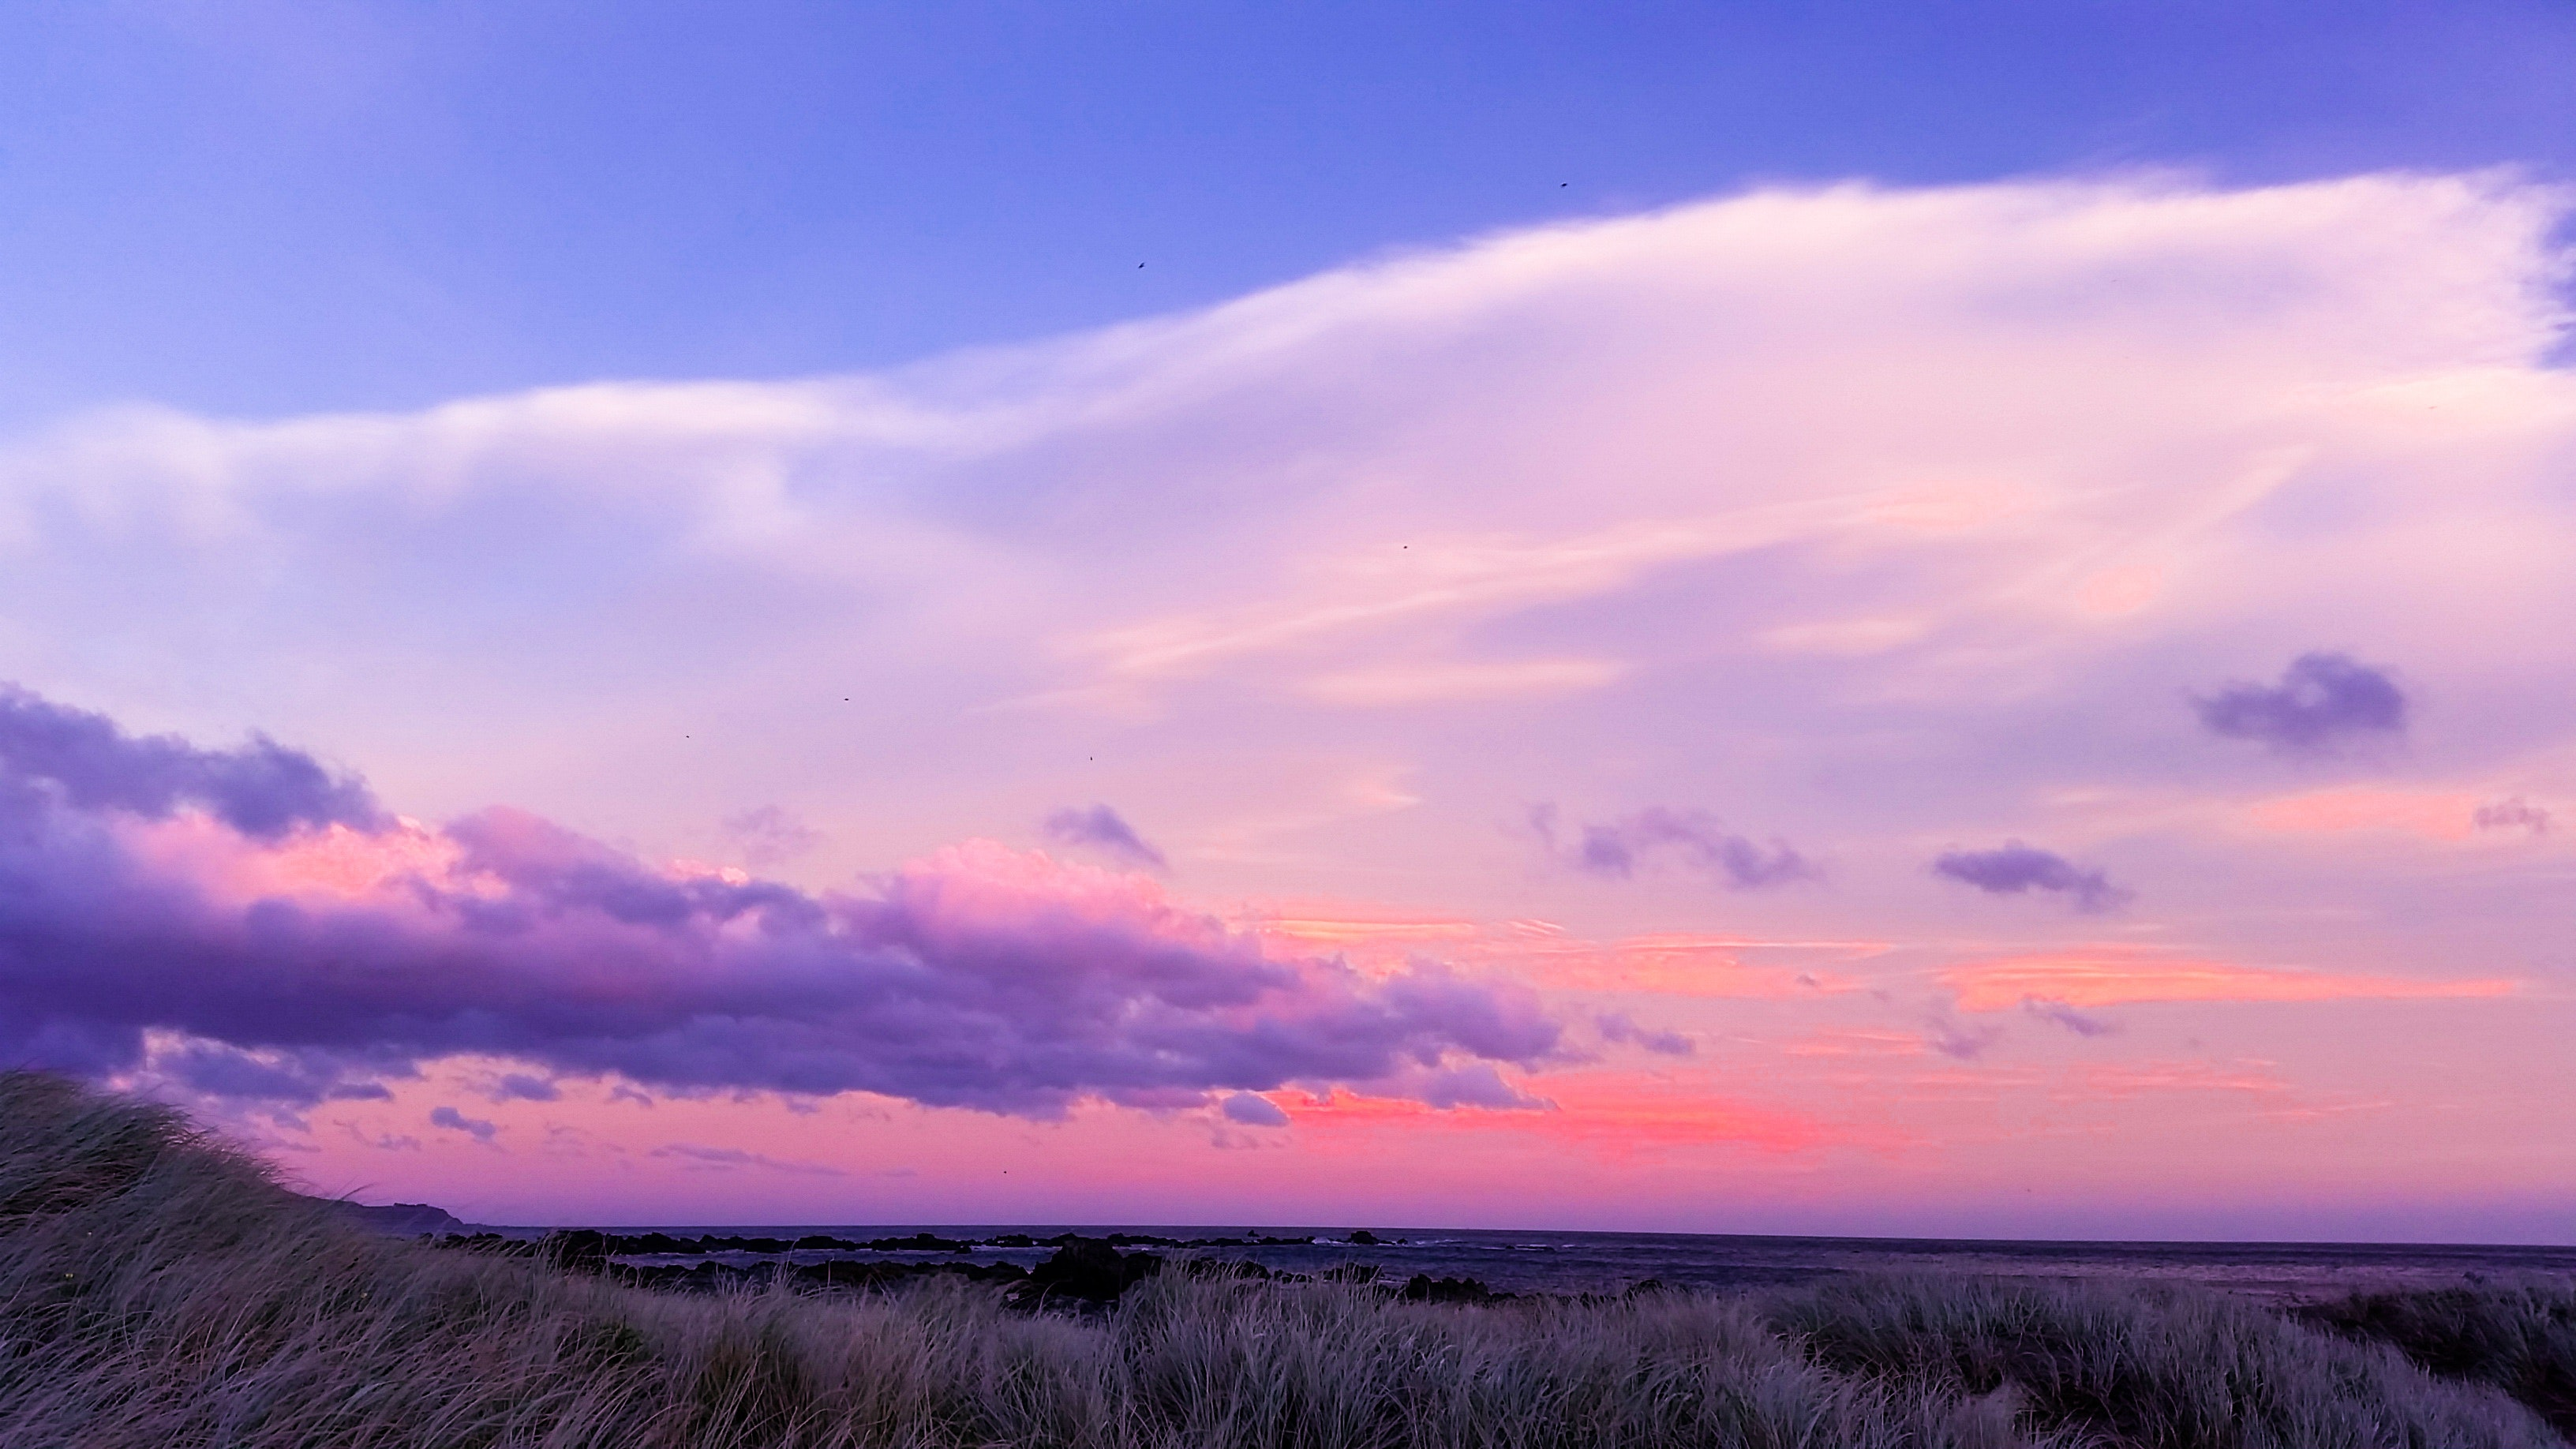 Cloudy Sky Evening Sky 4k Hd Nature 4k Wallpapers Images